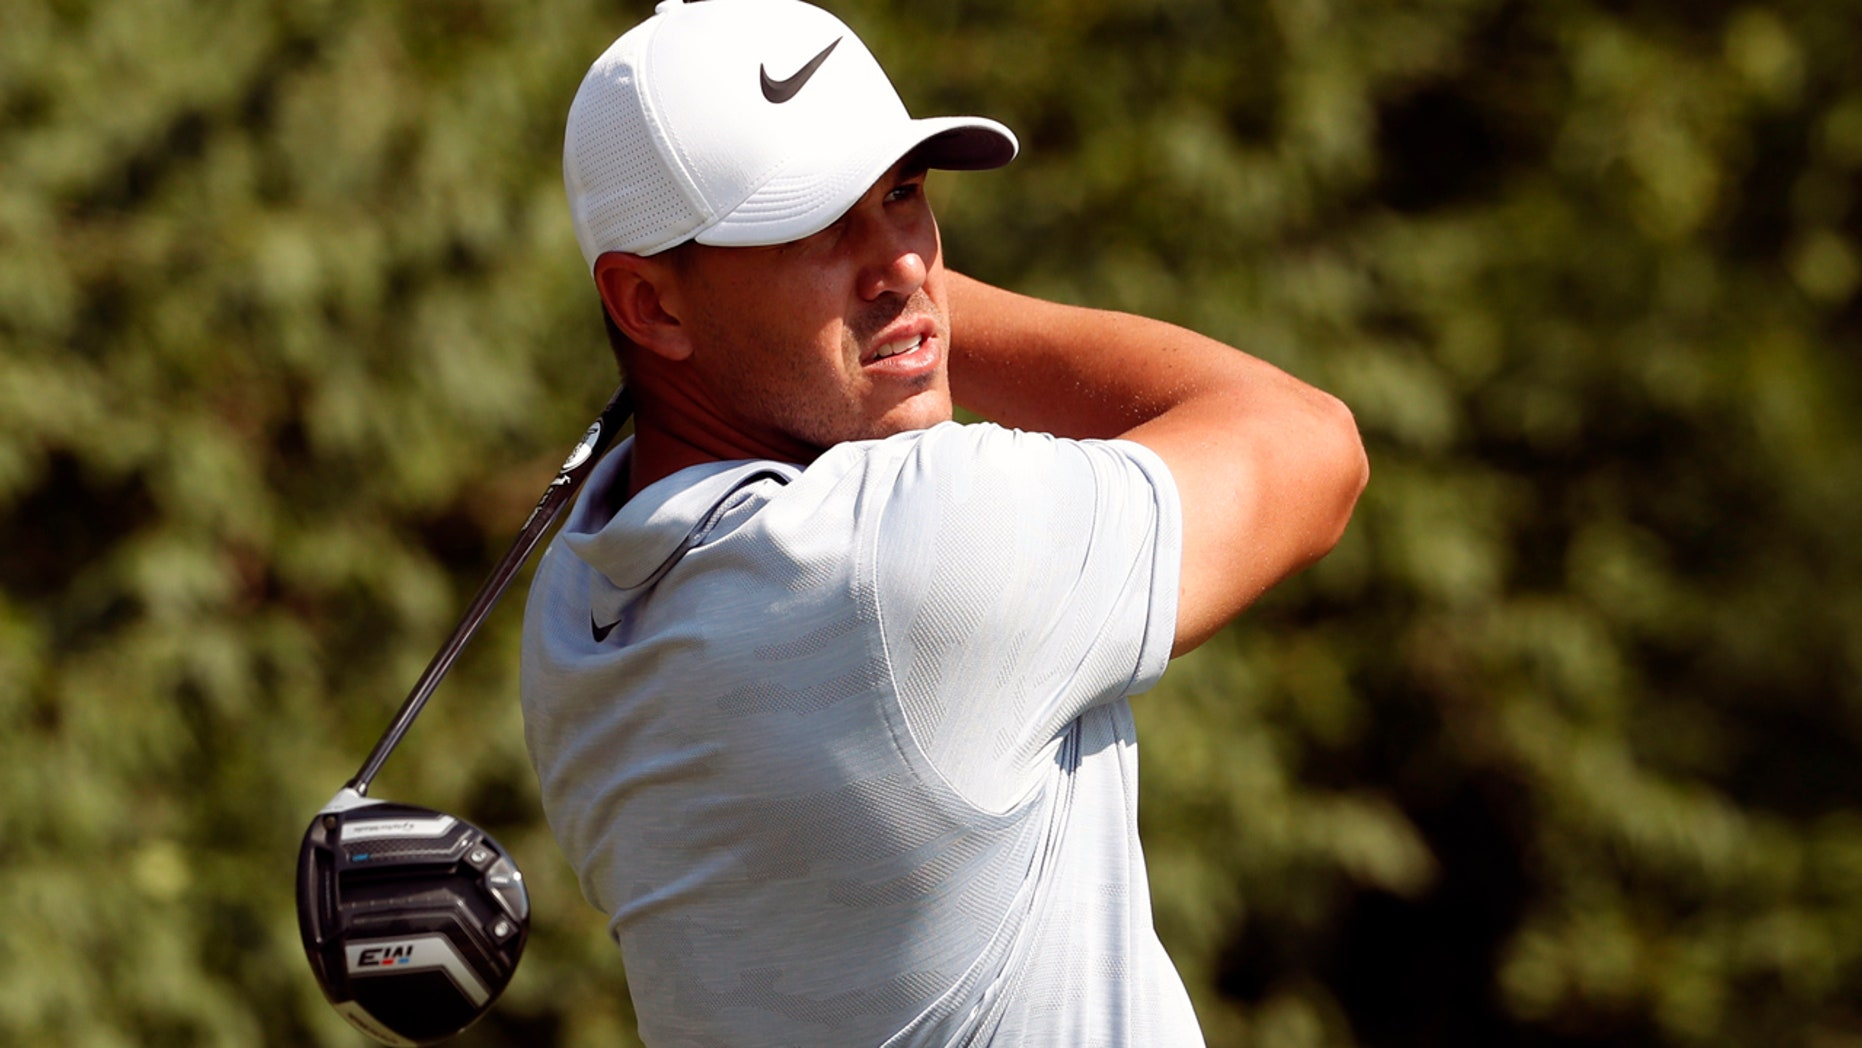 Brooks Koepka is the first man to win the US Open and PGA Championship in the same year since Tiger Woods in 2000.